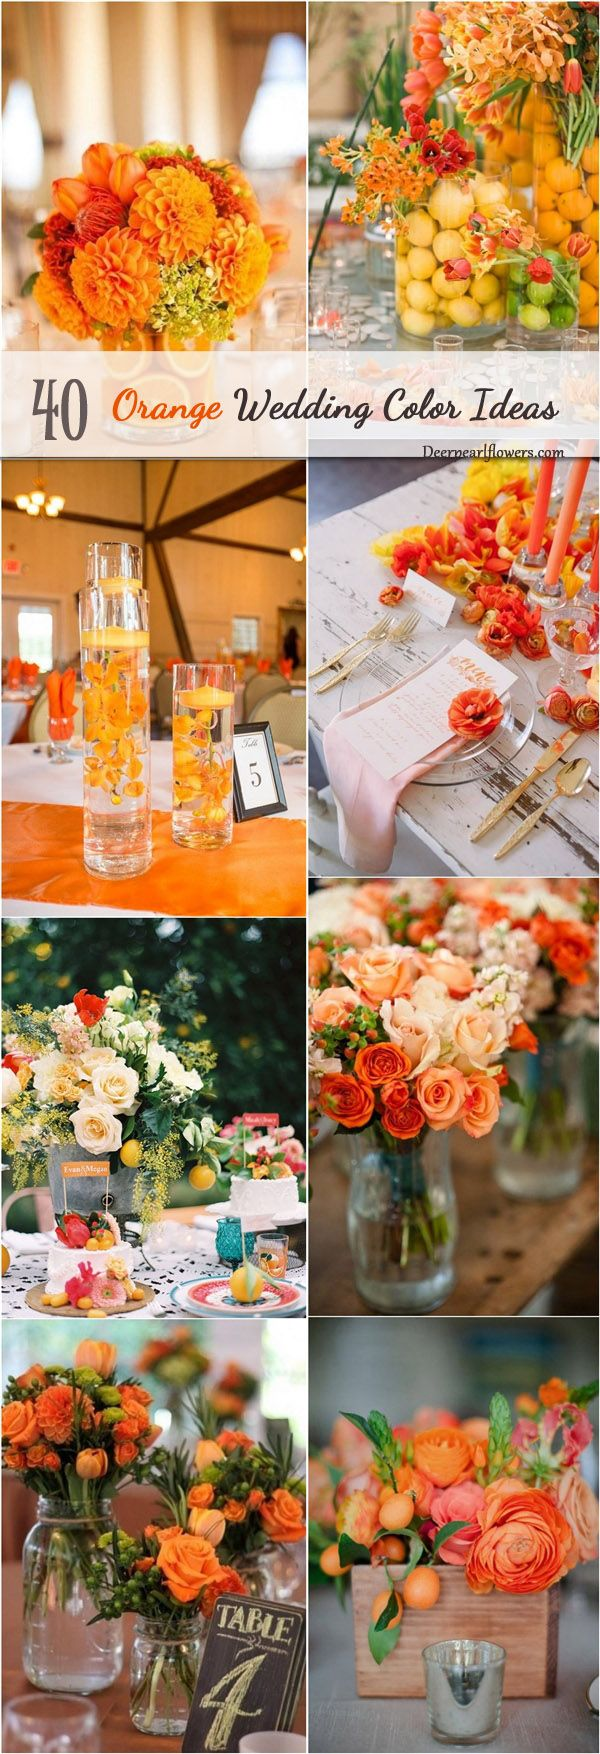 summer fall orange wedding color ideas / http://www.deerpearlflowers.com/orange-wedding-color-ideas/2/